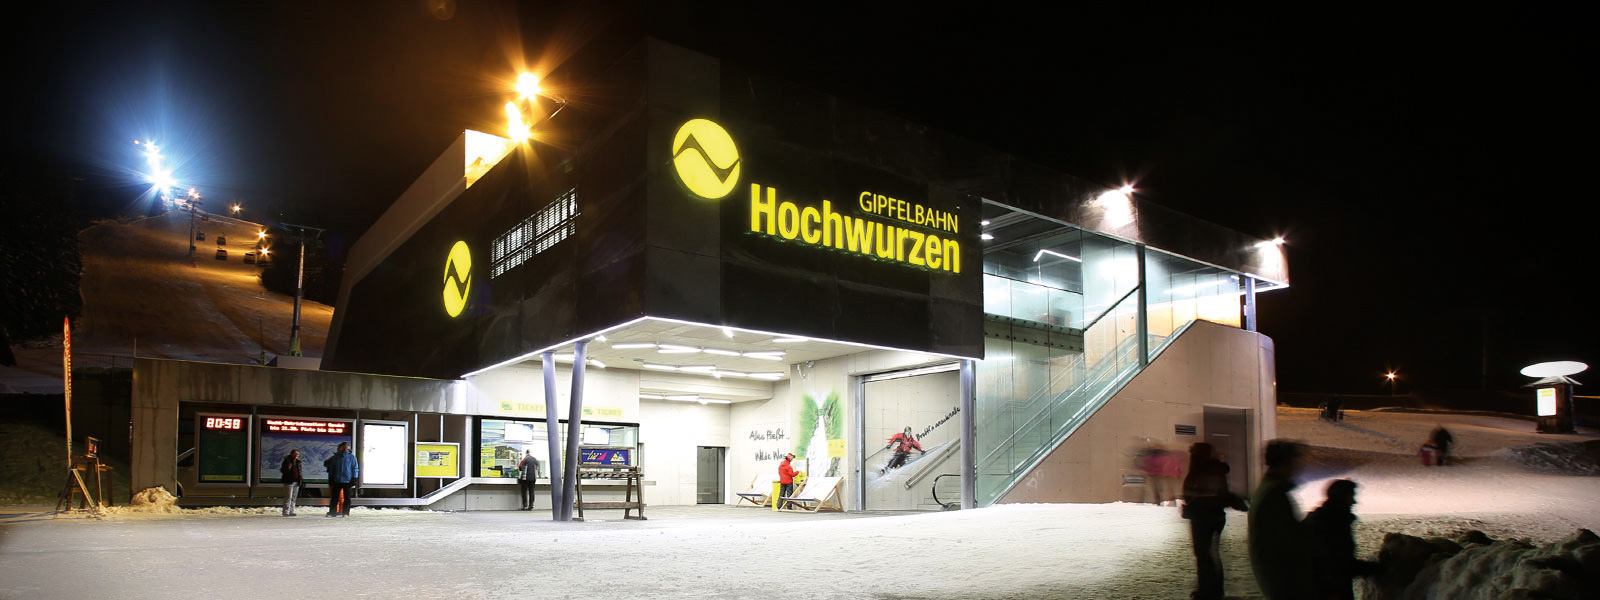 The valley station of the Gipfelbahn Hochwurzen at night